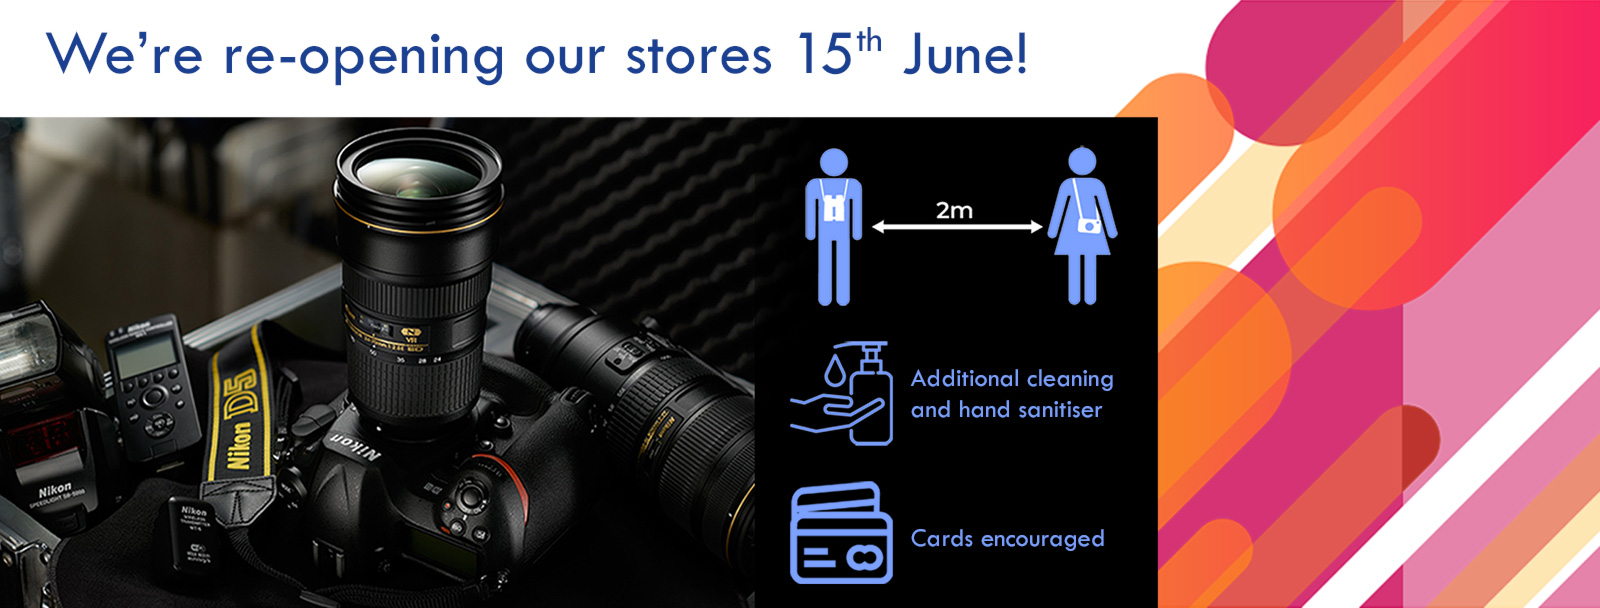 Photography Stores Reopening 15 June